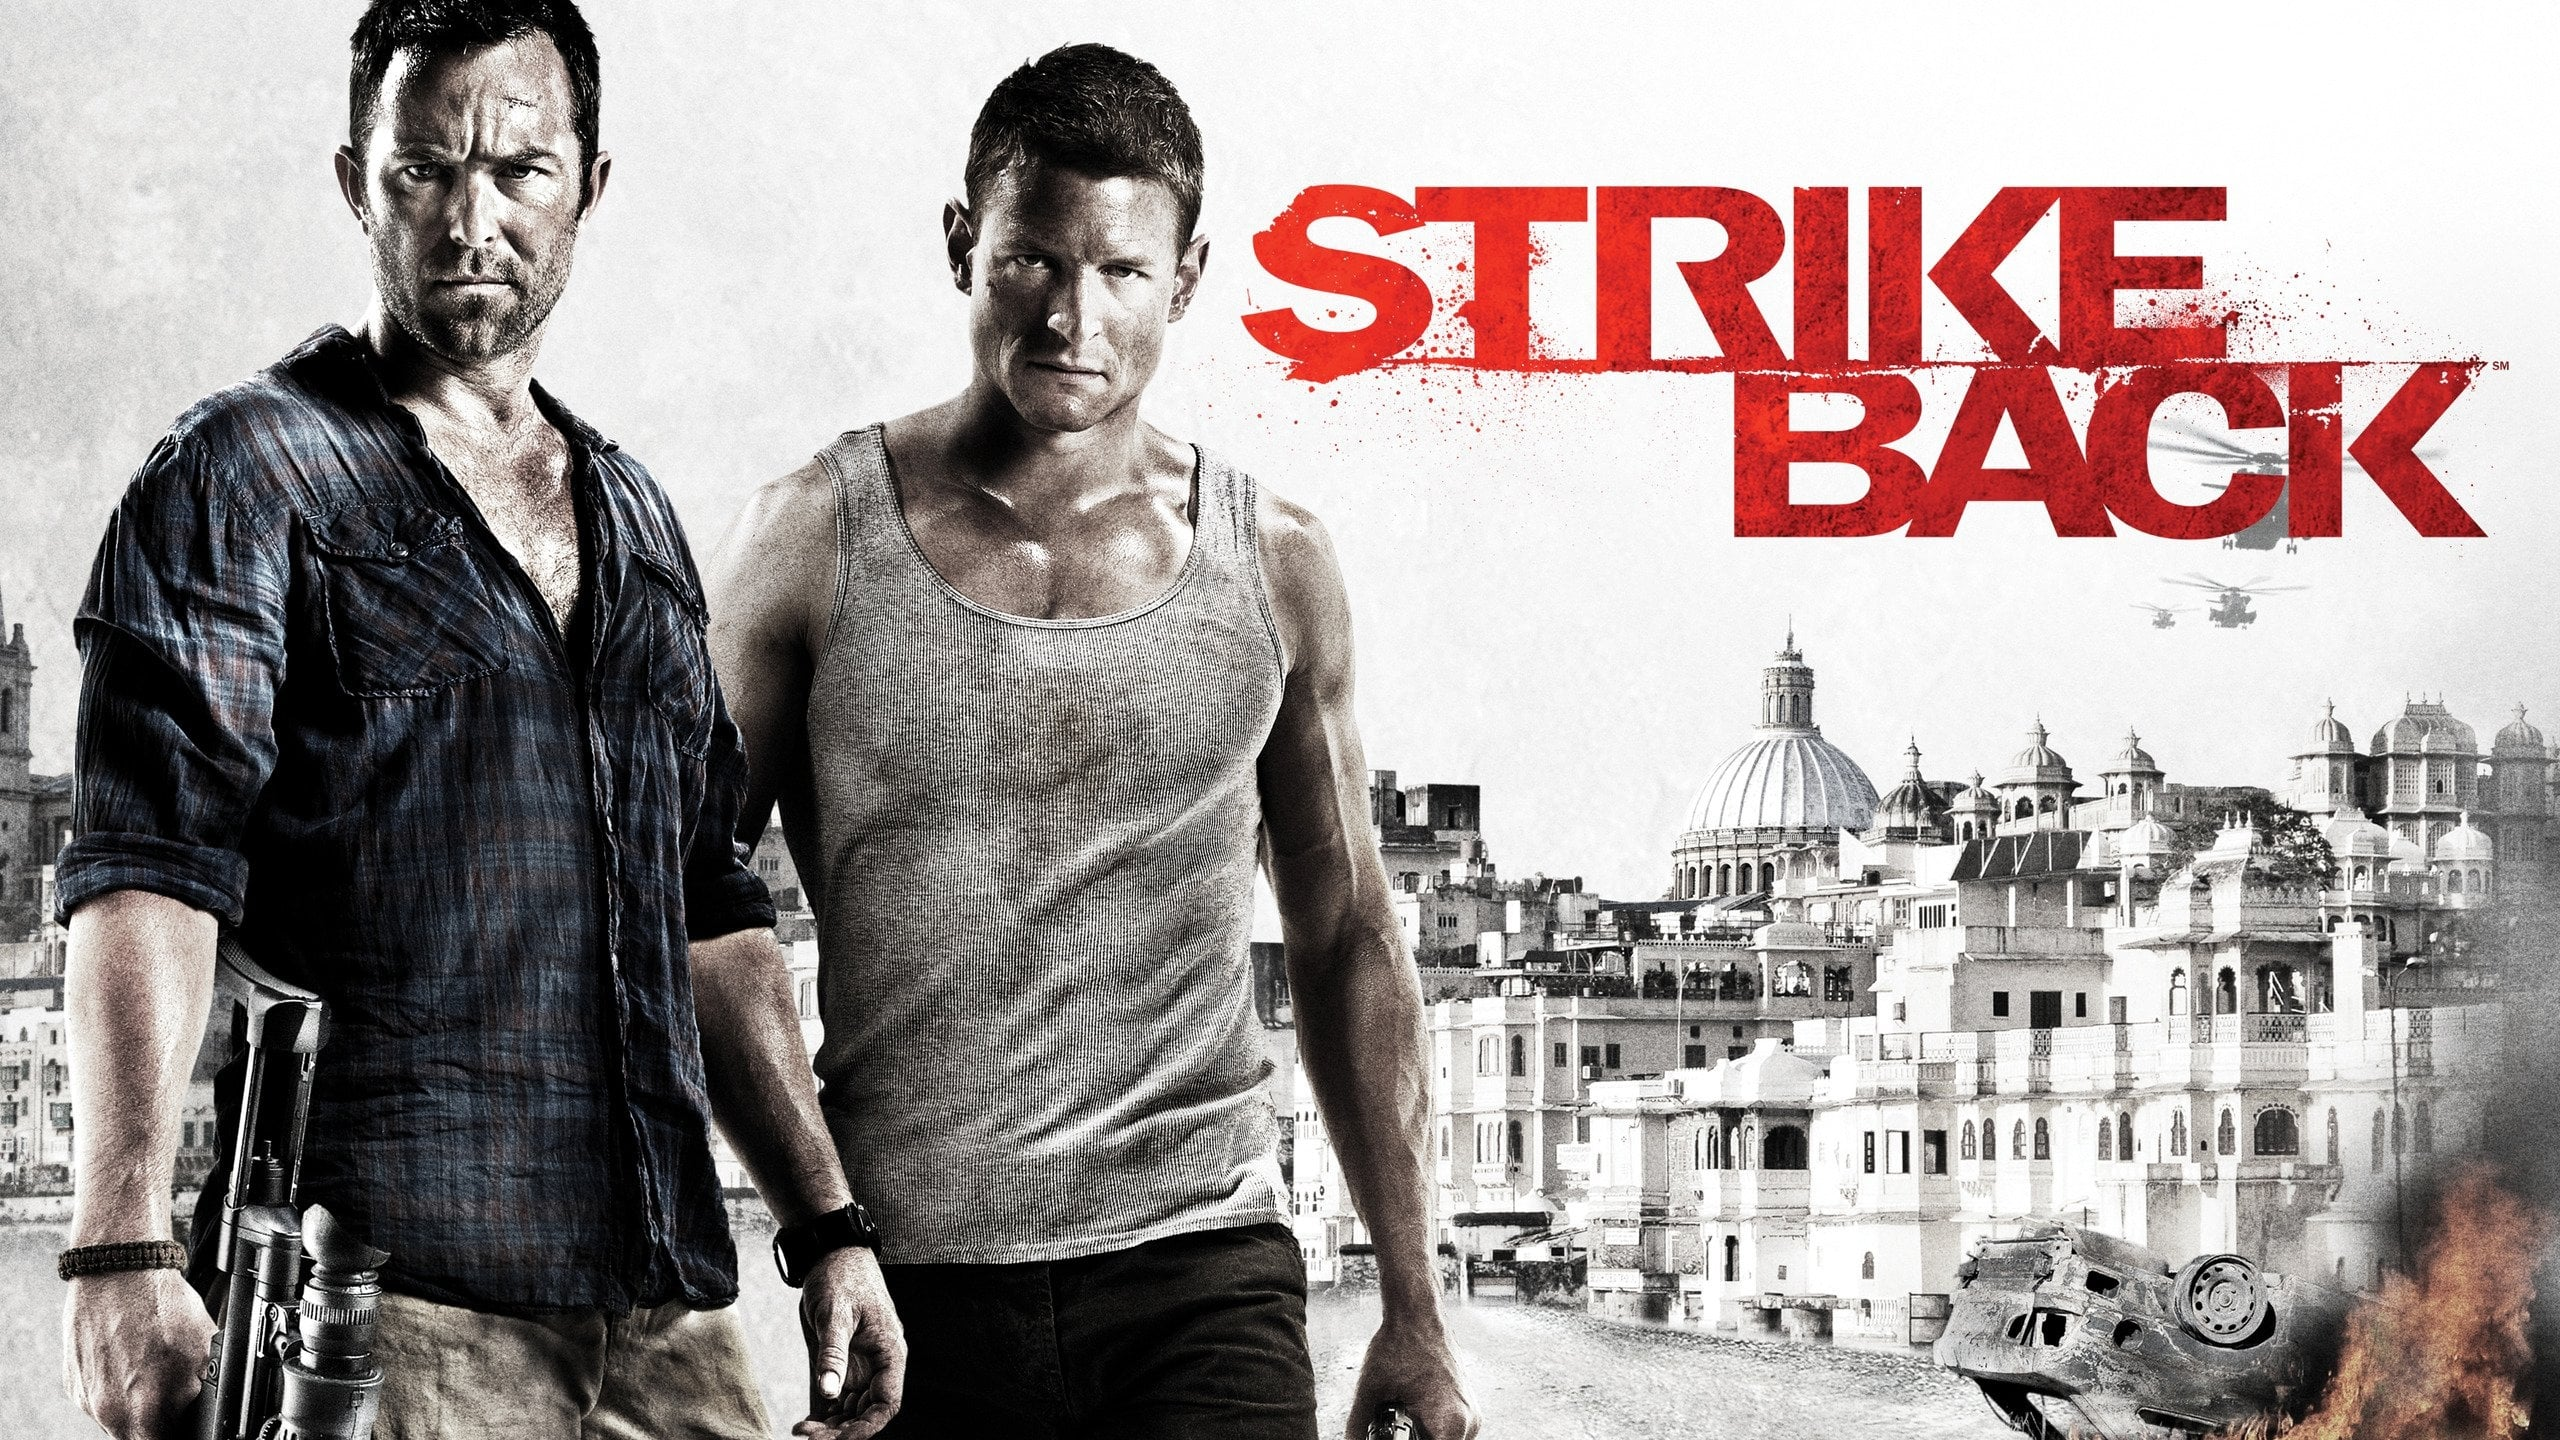 One last shot; Strike Back start in februari